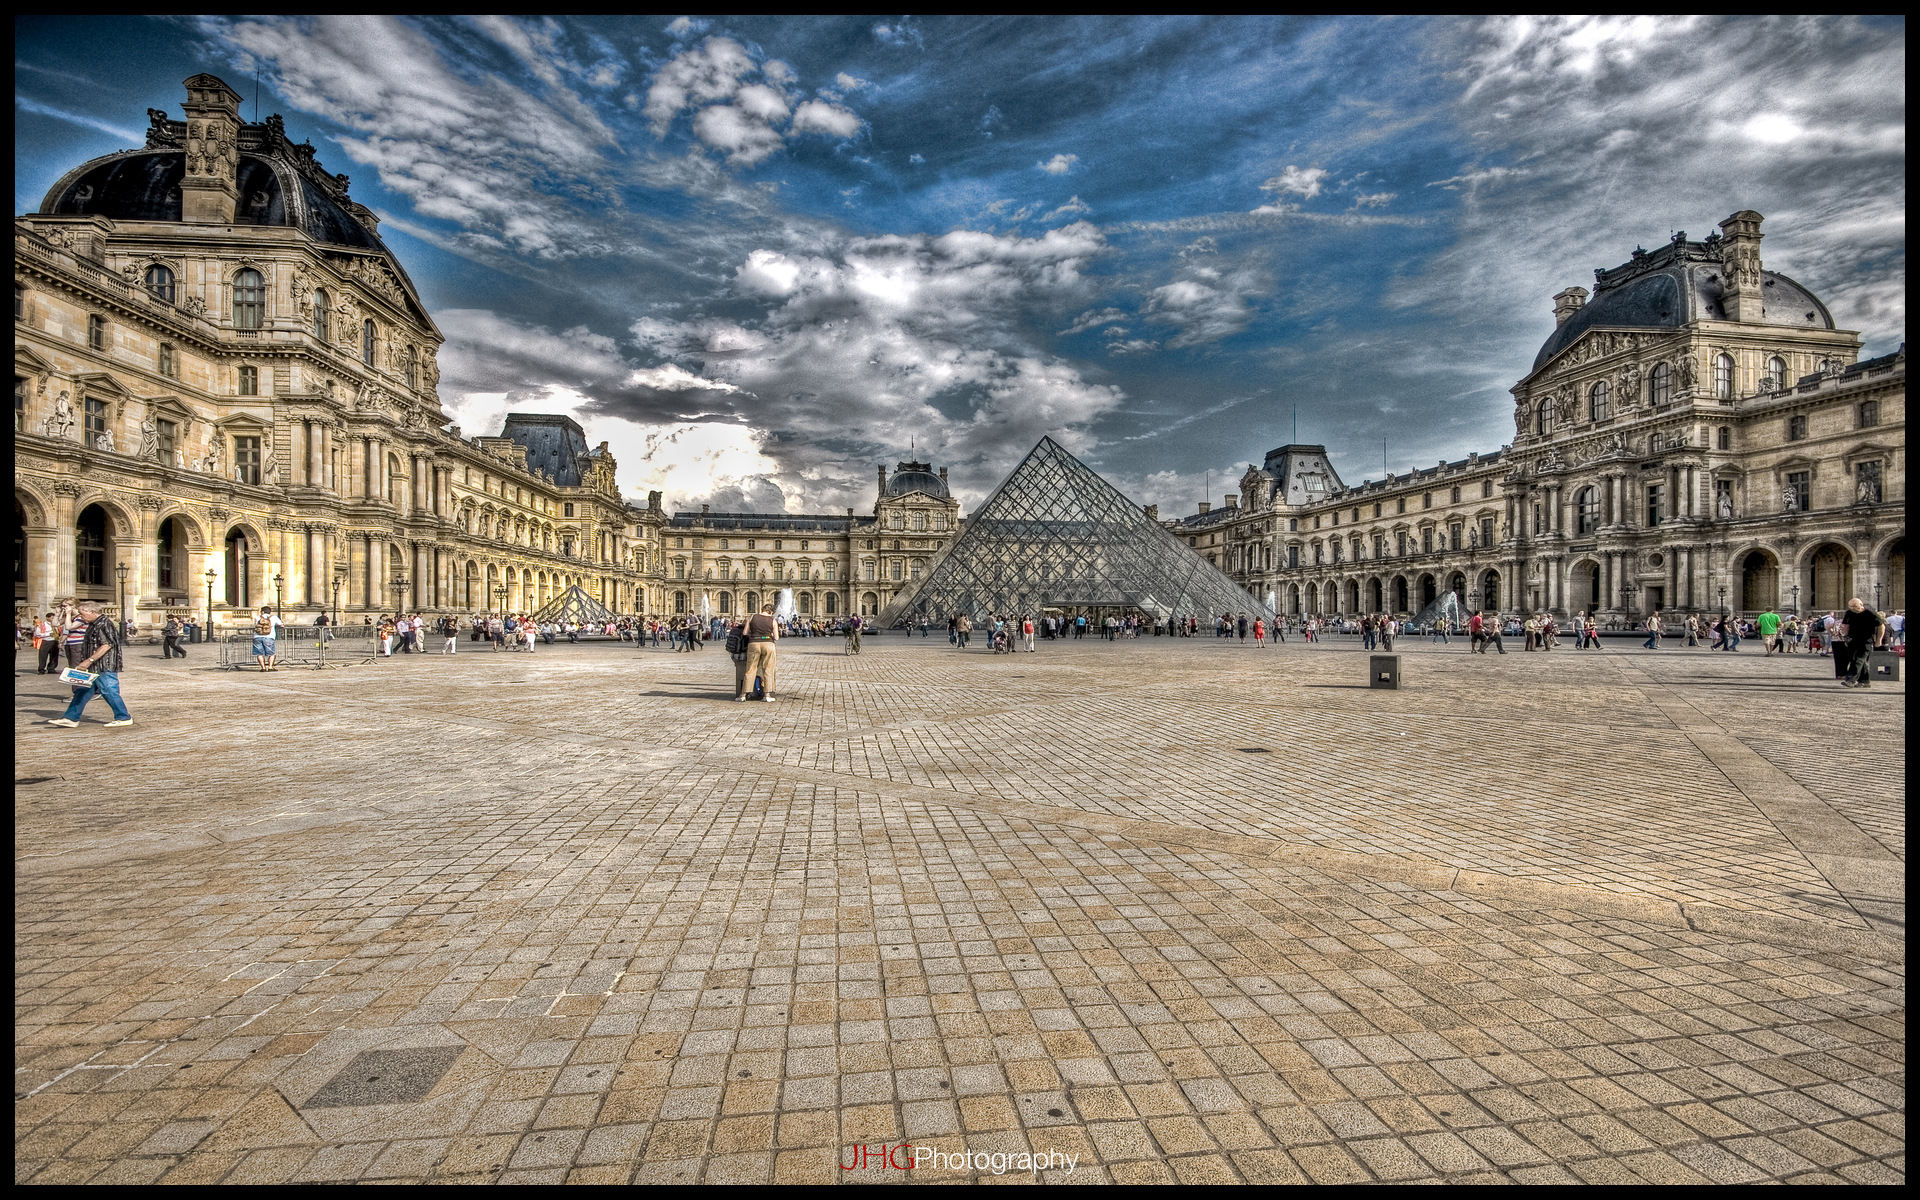 Best 46 Louvre Wallpaper on HipWallpaper Louvre Wallpaper 1920x1200